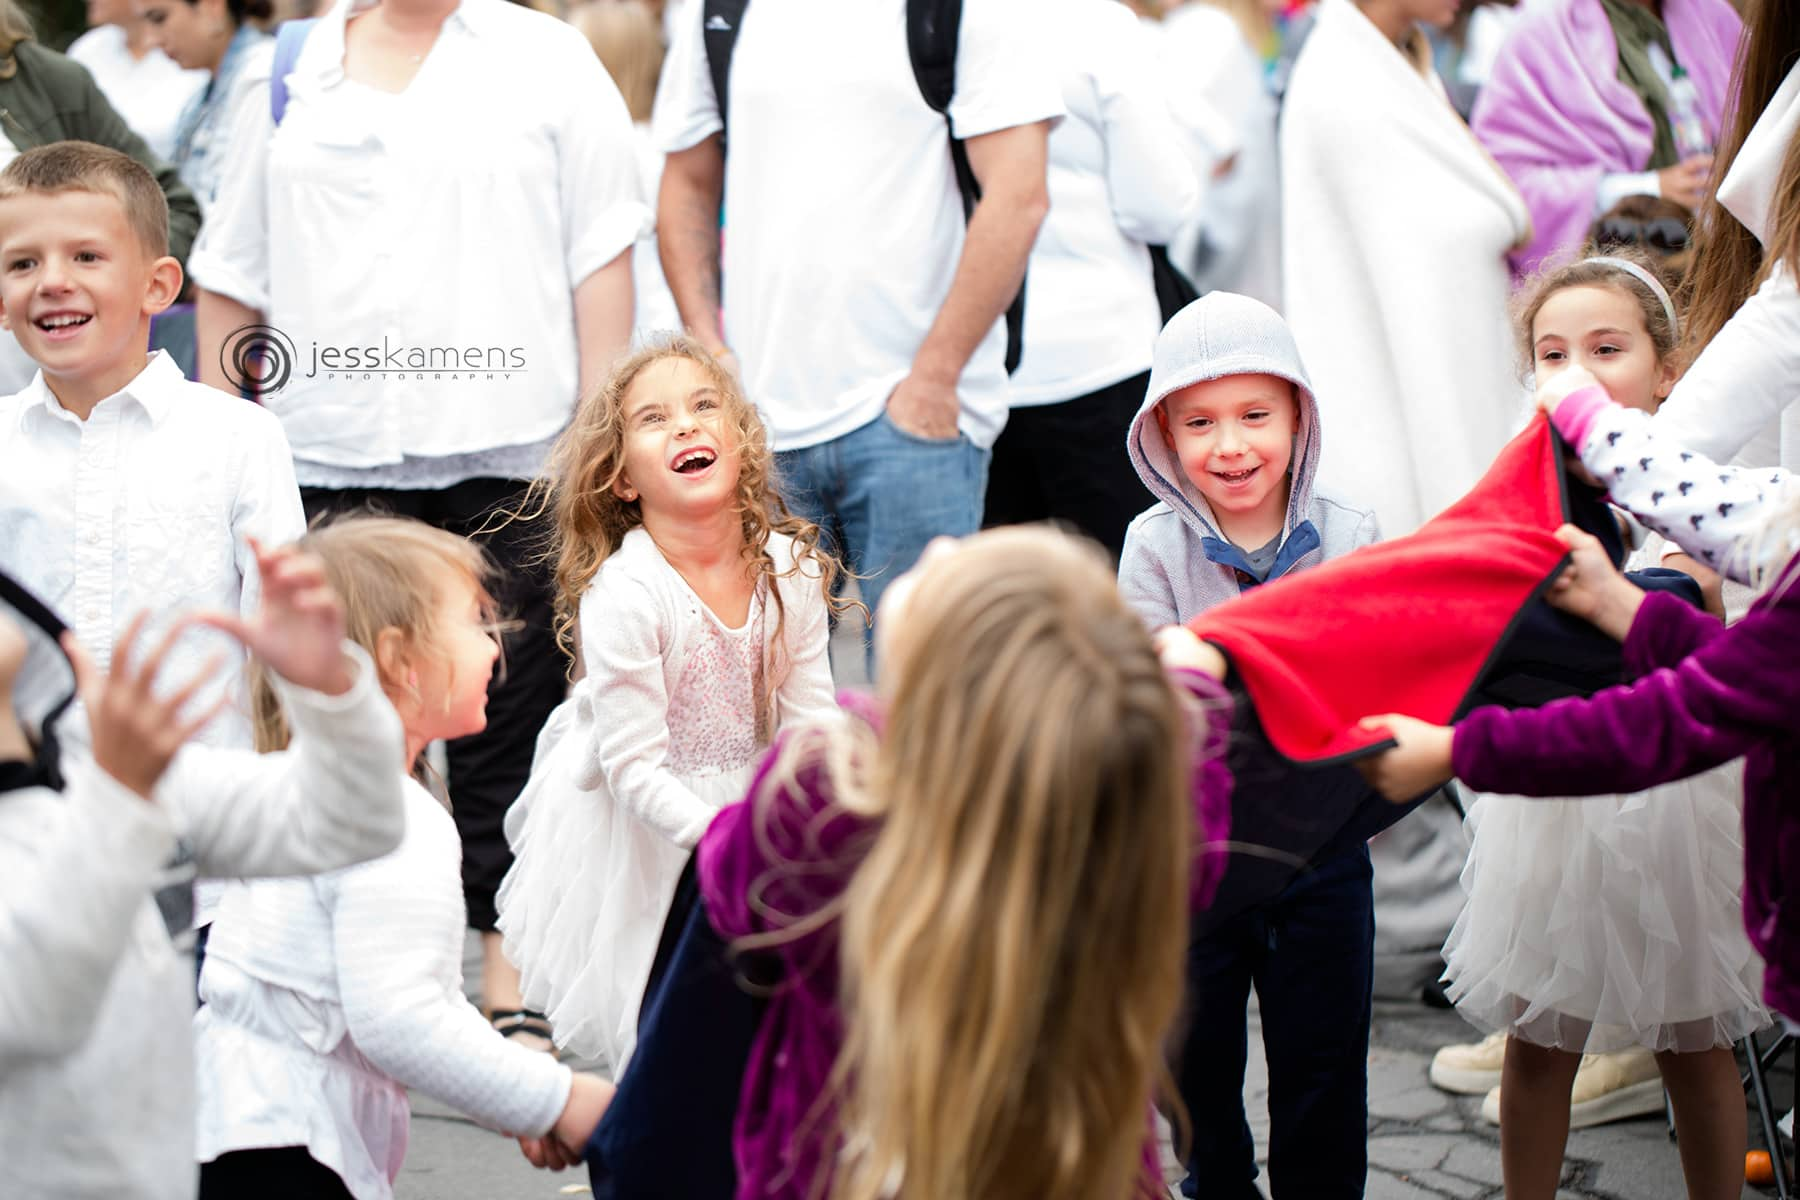 homeschooled children play in a circle with a parachute and a ball